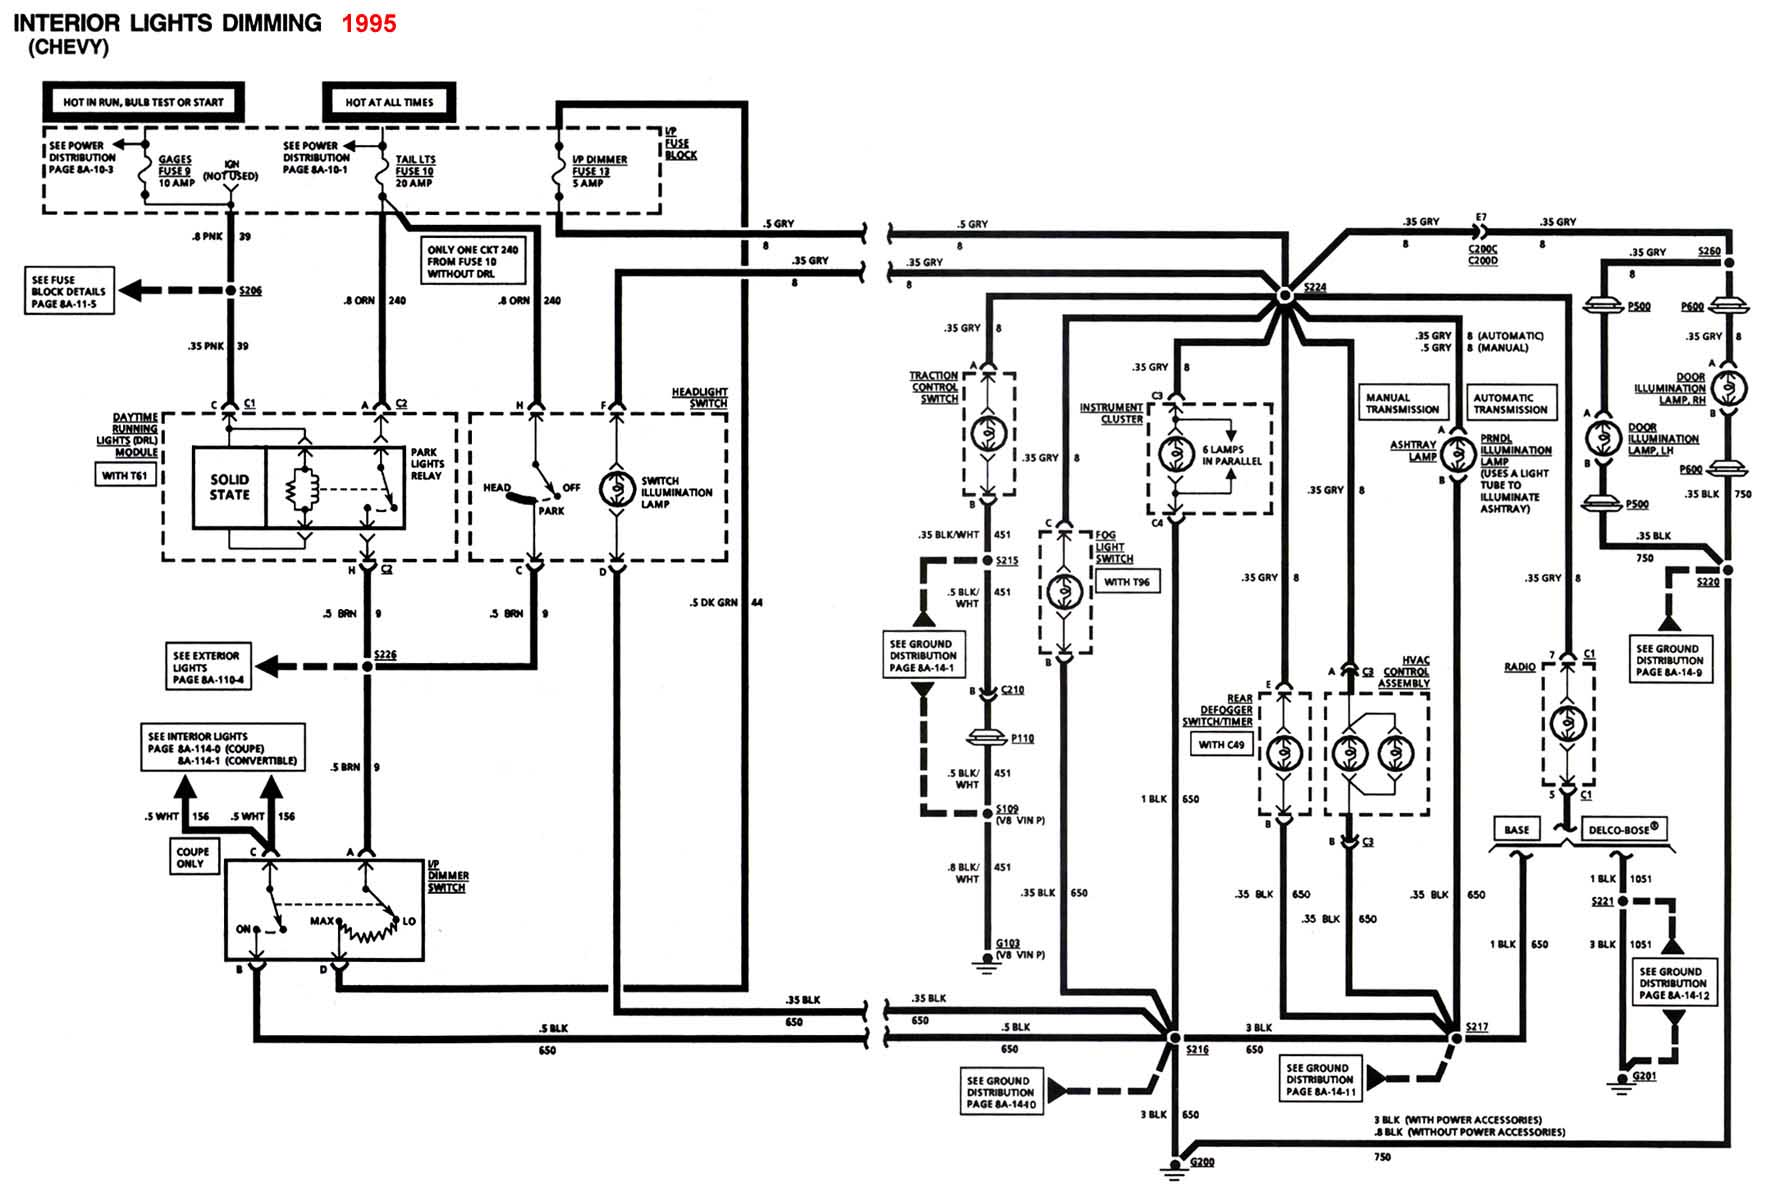 interior_lights_1995 lt1 wiring diagram 1993 lt1 wiring diagram \u2022 free wiring diagrams painless wiring harness lt1 at fashall.co